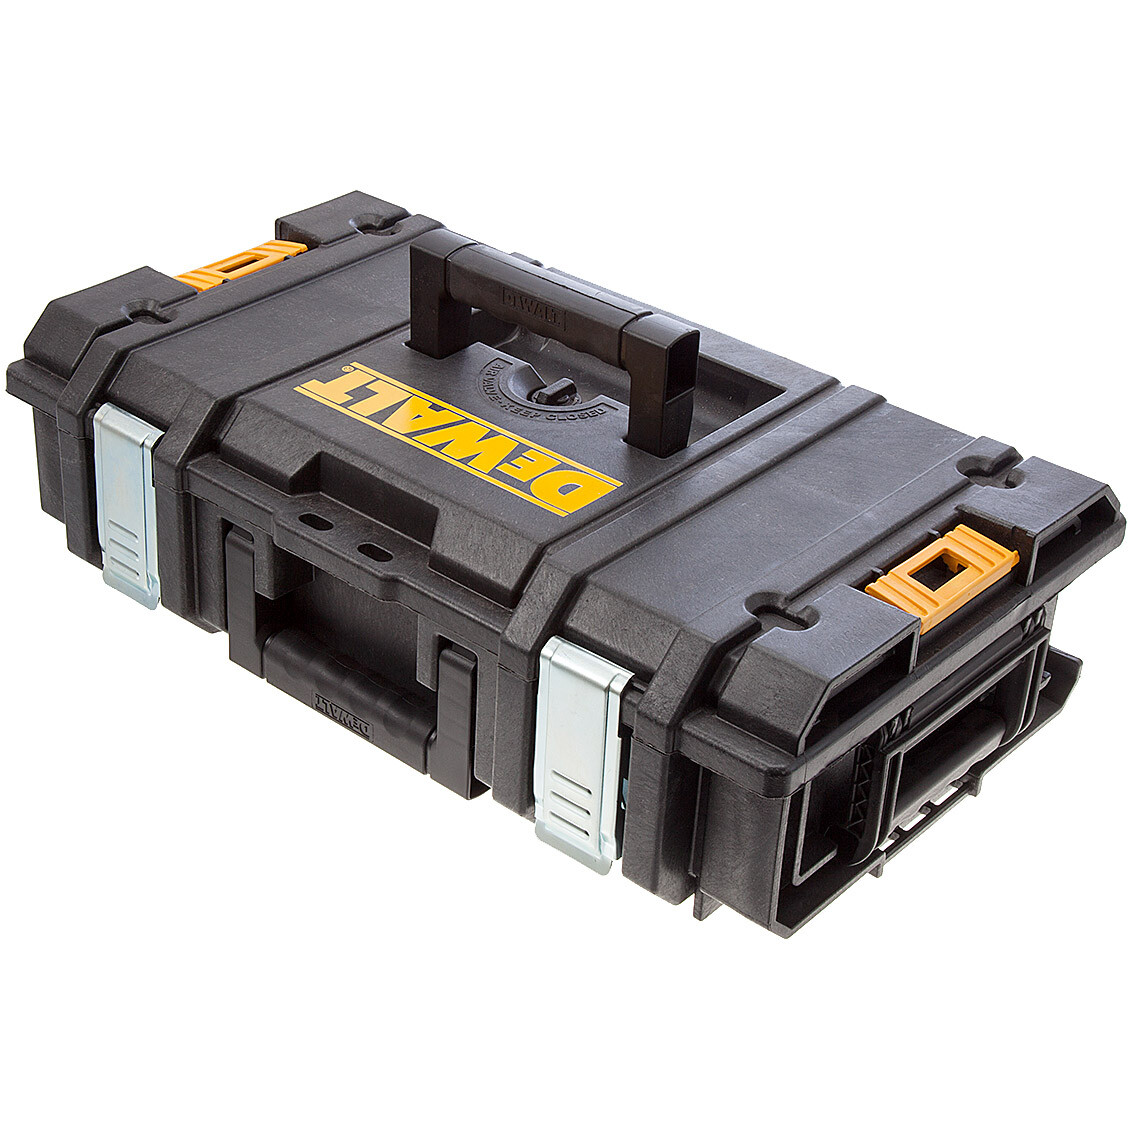 DeWalt DS150 Tough System ToolBox Small IP65